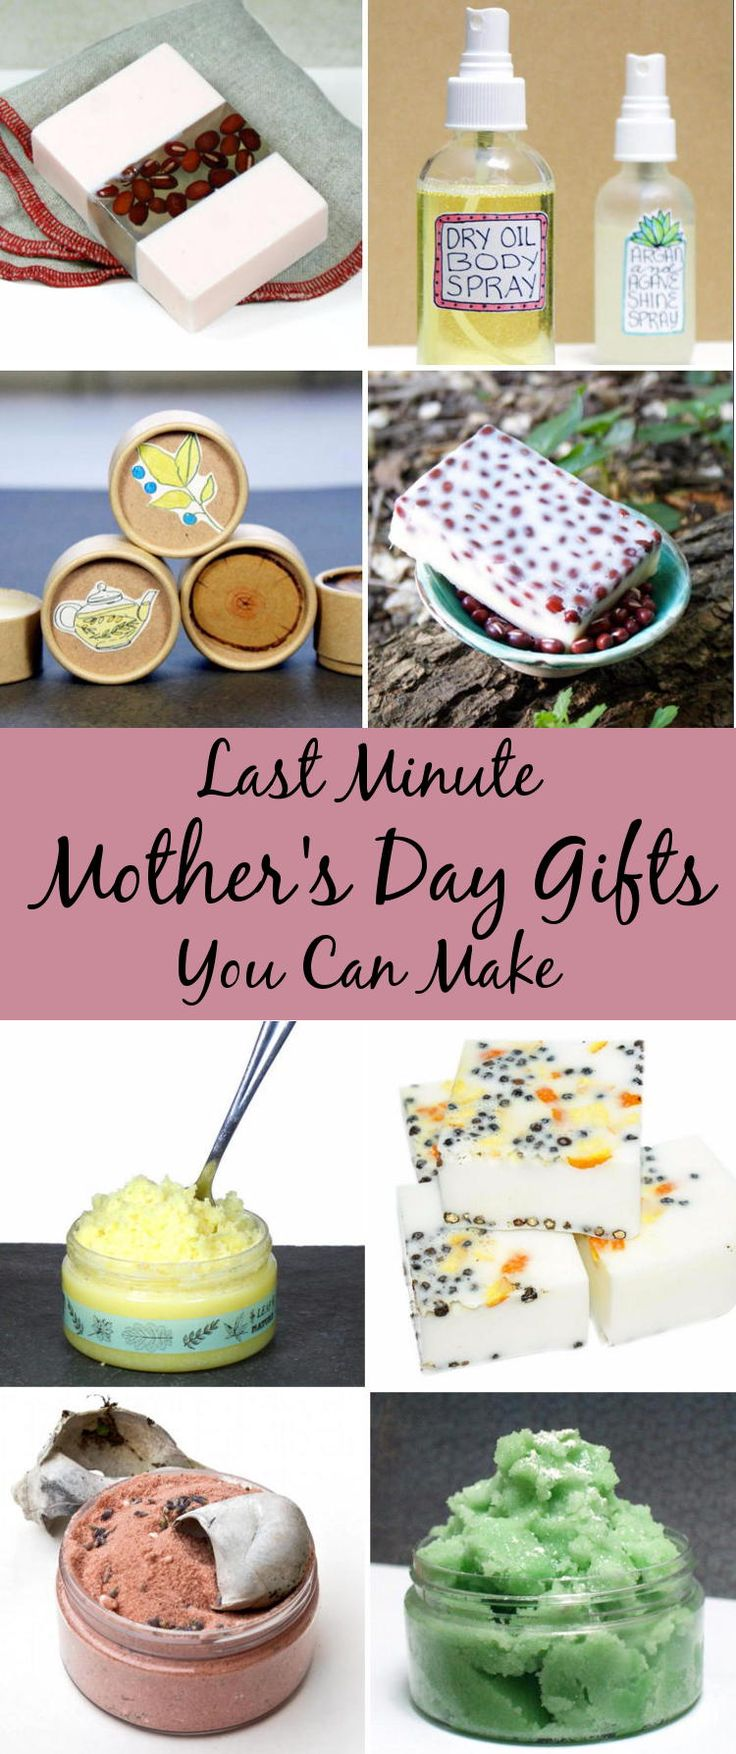 1175 best homemade mothers day gift ideas images on pinterest last minute mothers day craft projects need last minute homemade mothers day gift ideas negle Image collections